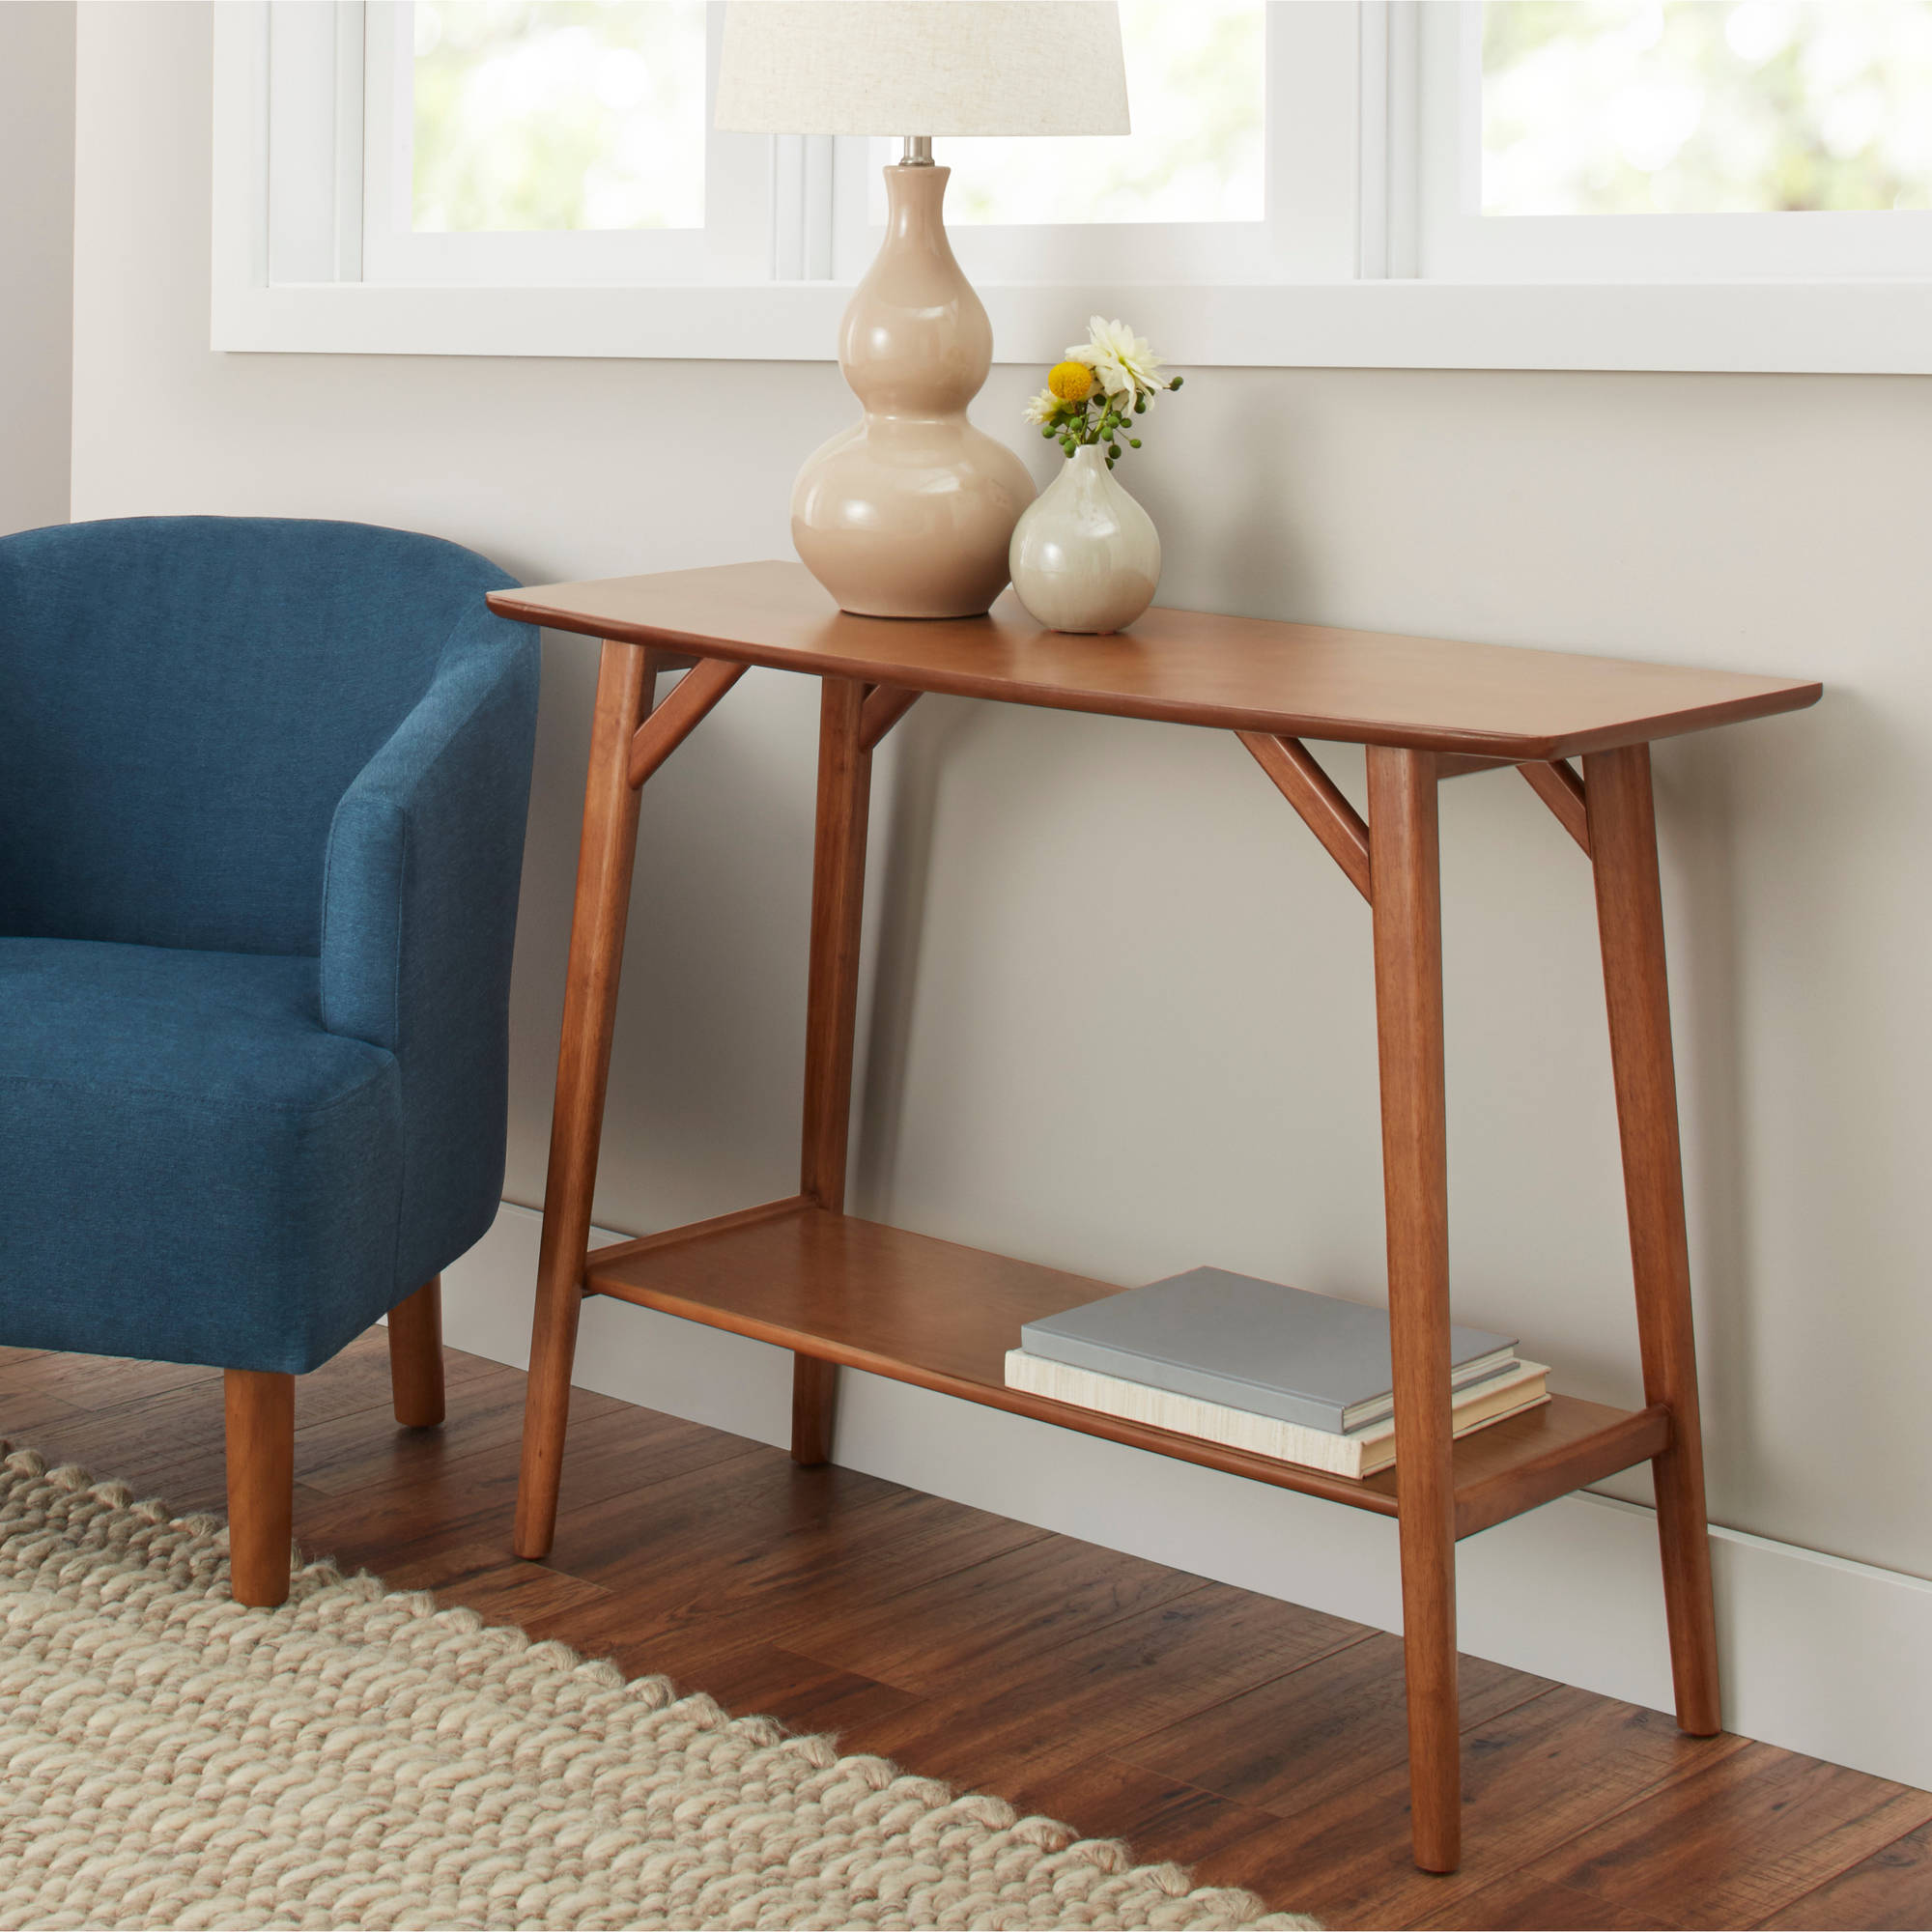 Better Homes & Gardens Reed Mid-Century Modern Console Table, Pecan -  Walmart.com